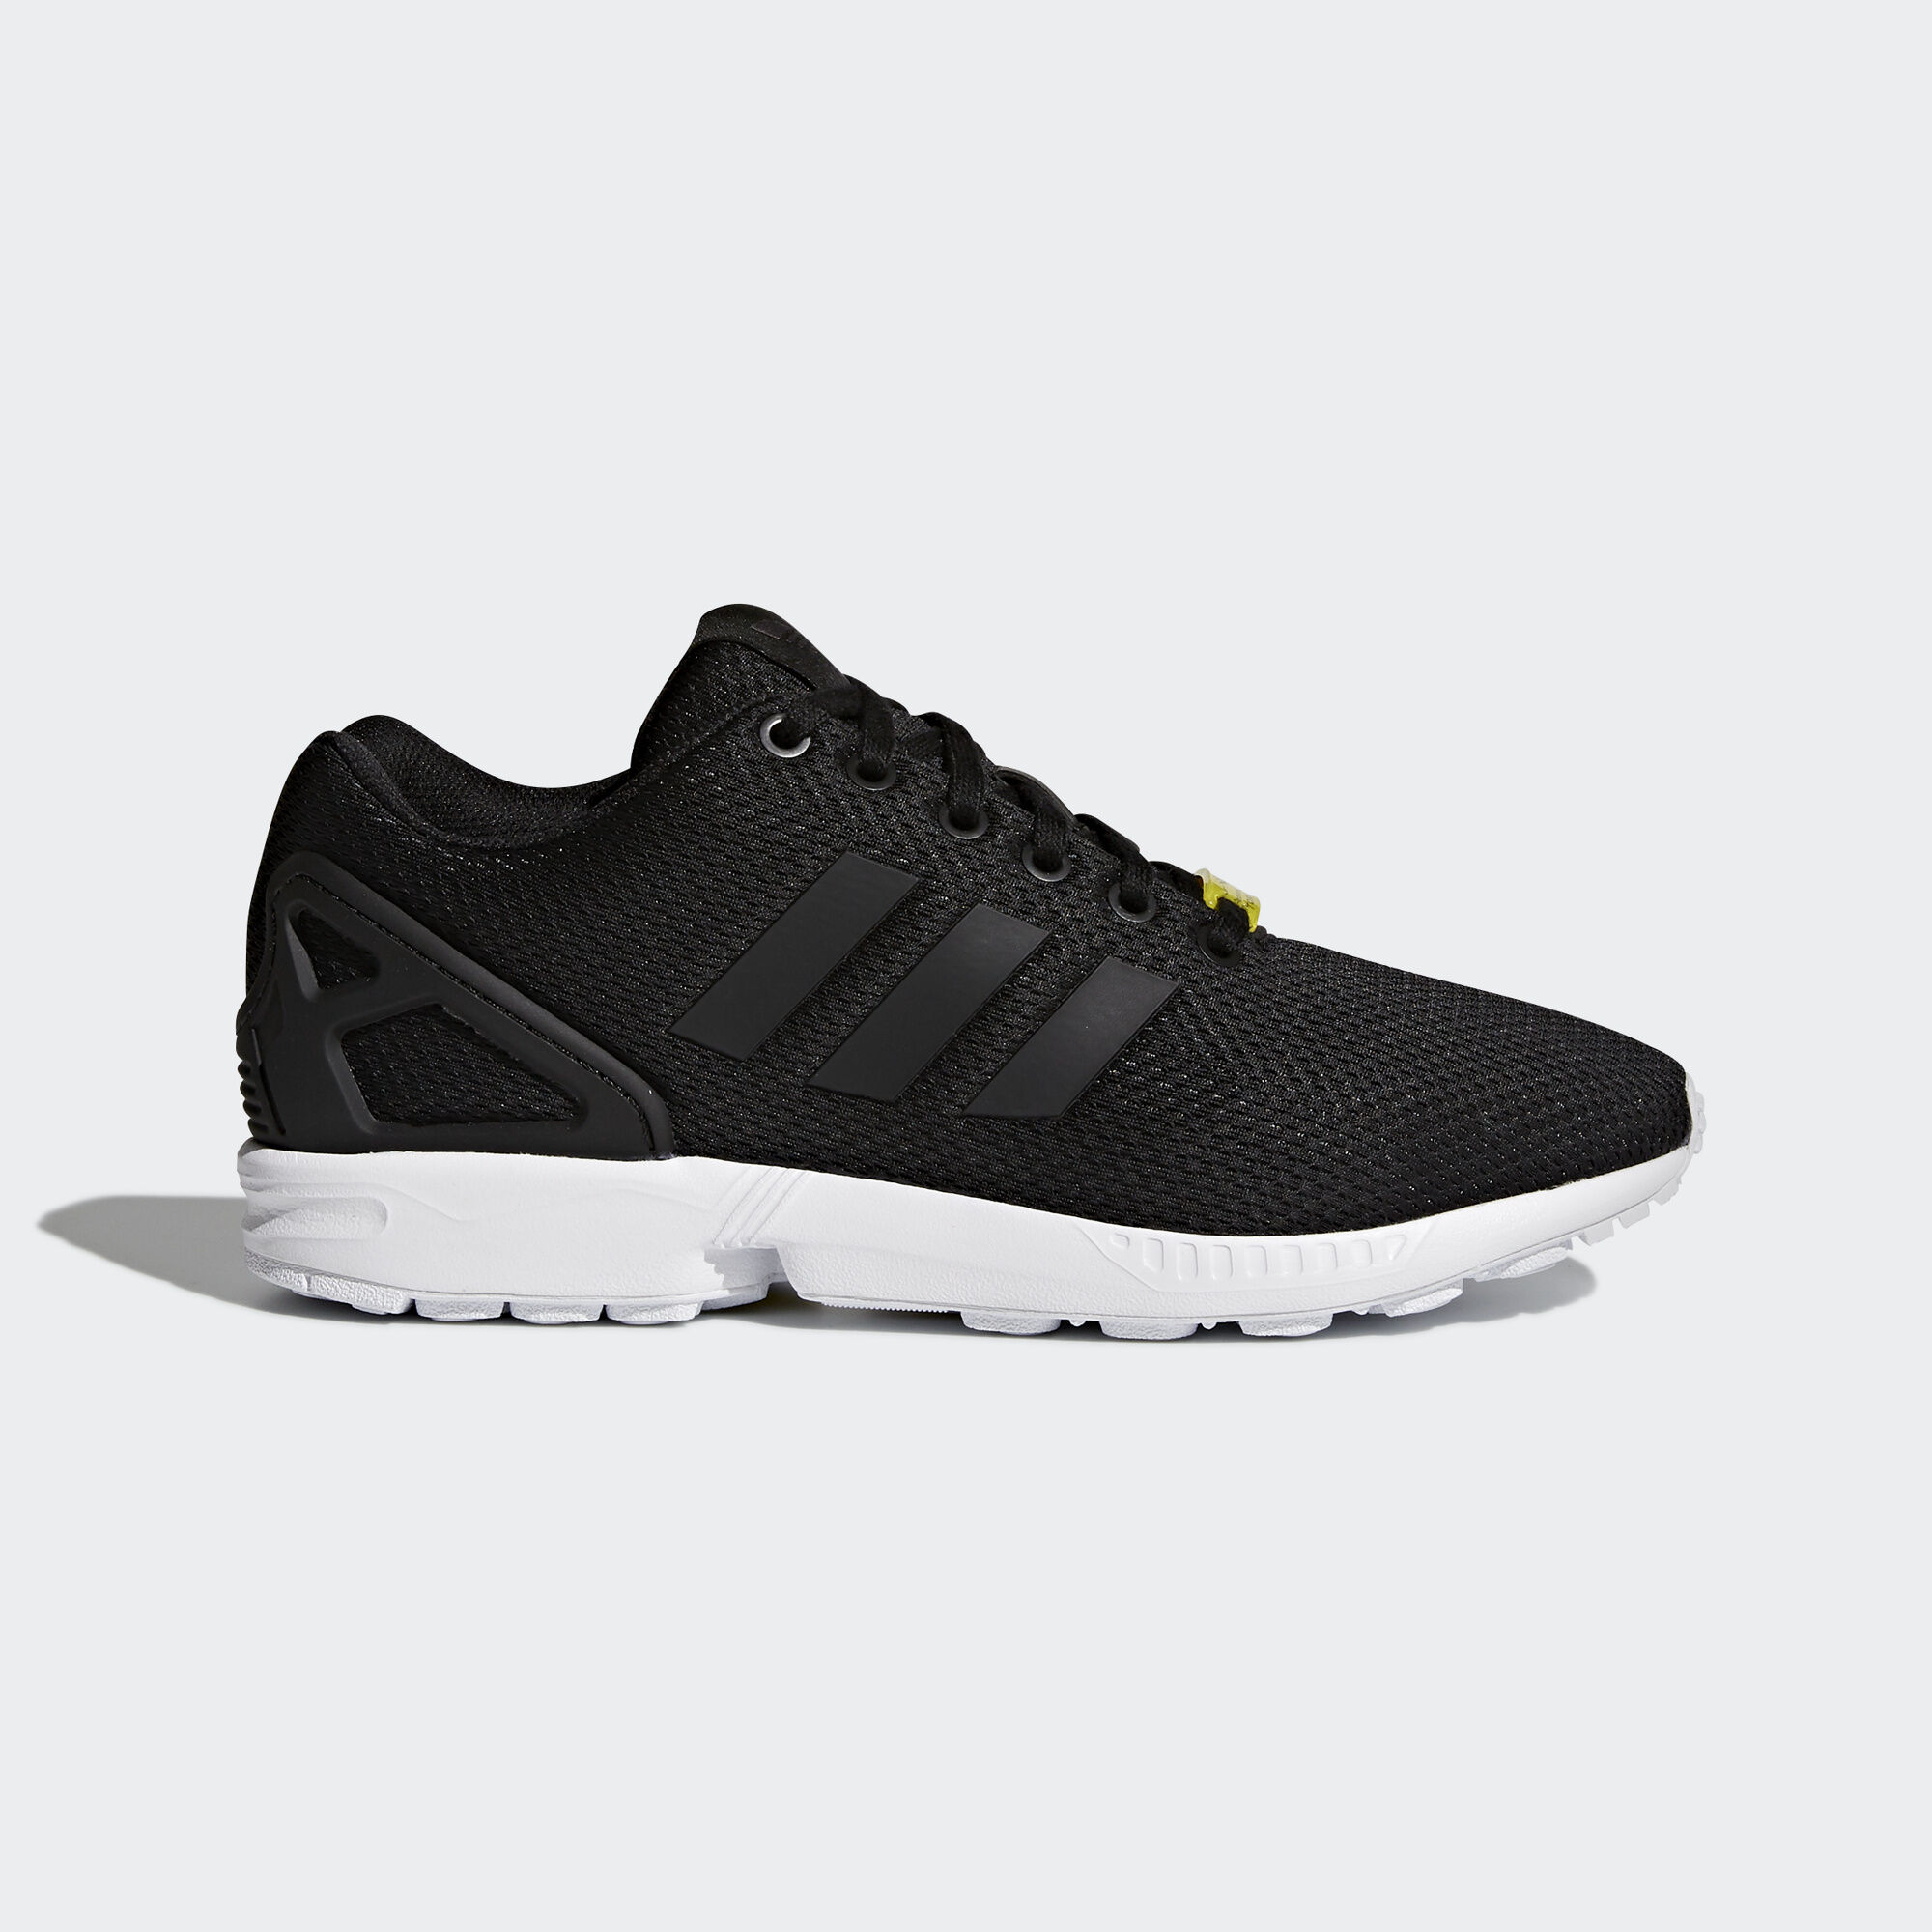 Adidas Zx Flux Black And Gold Shoes